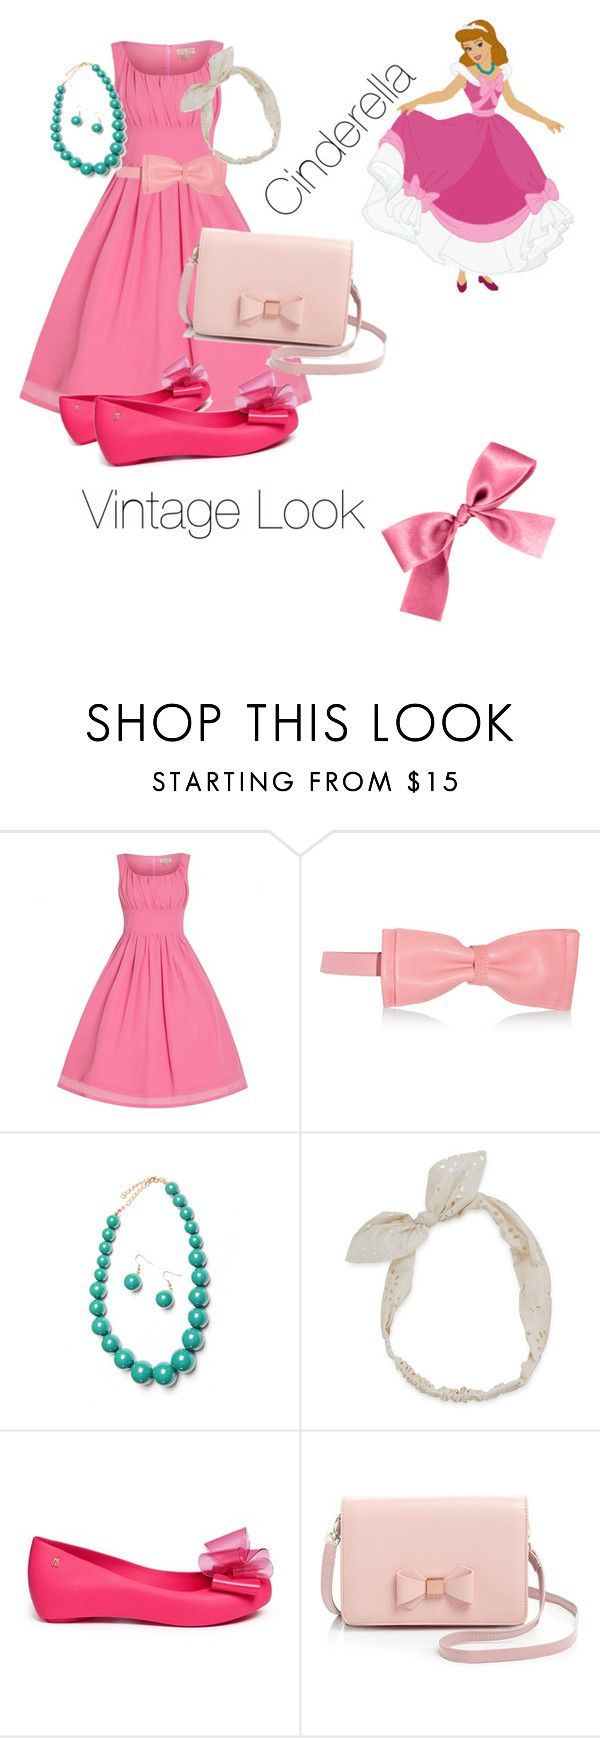 """cinderella"" by adisneygirlme ❤ liked on Polyvore featuring RED Valentino, Carole, Melissa, Ted Baker, vintage, Pink, dress, cinderella and disneybound"